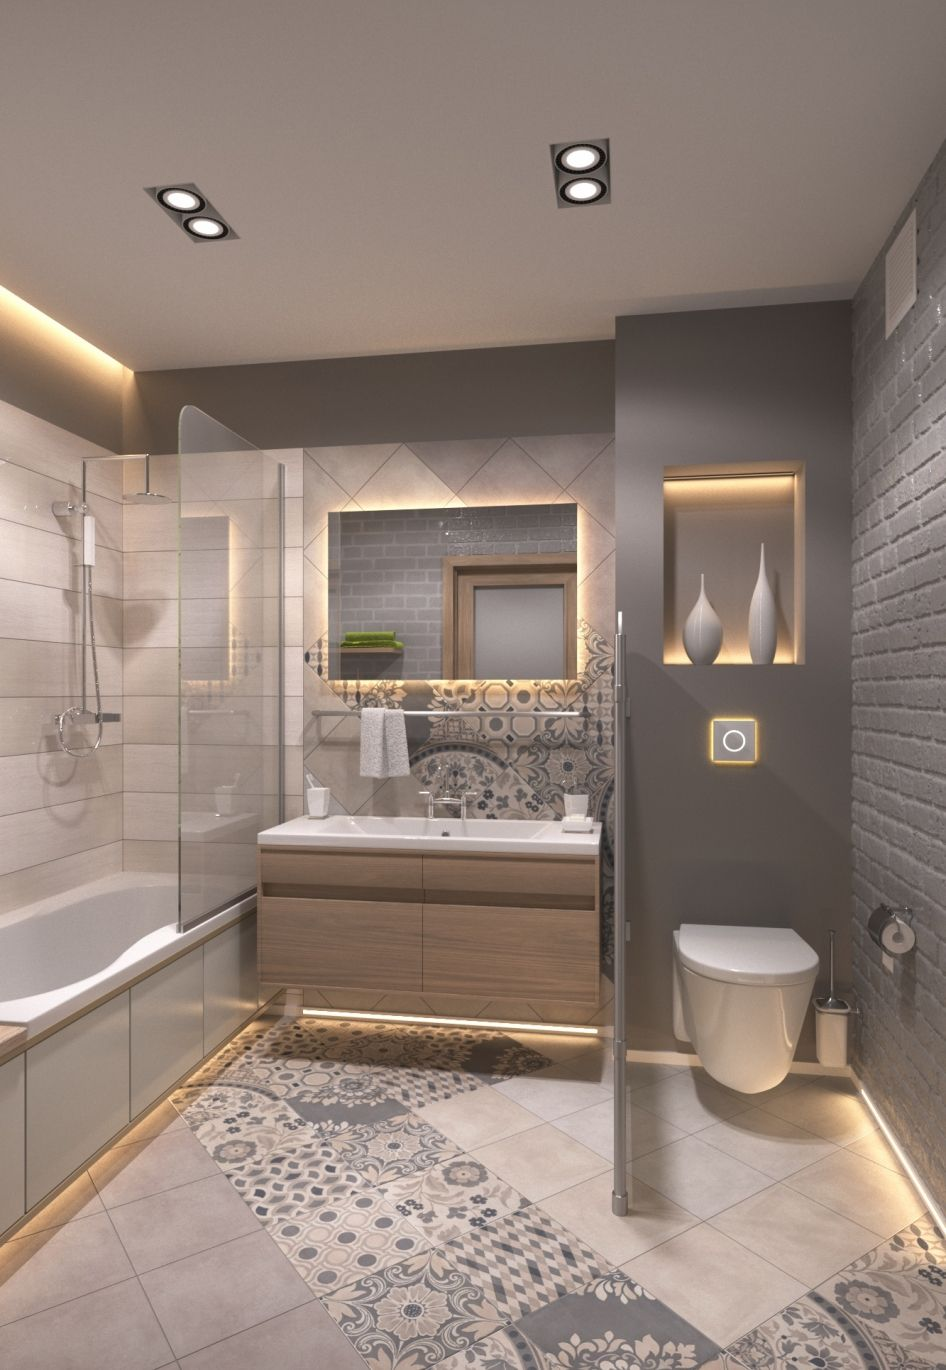 Check out these fantastic bathroom decor ideas for your home click on image to see many more interior designs also amazing design floor plan indoor  outdoor bath rh pinterest